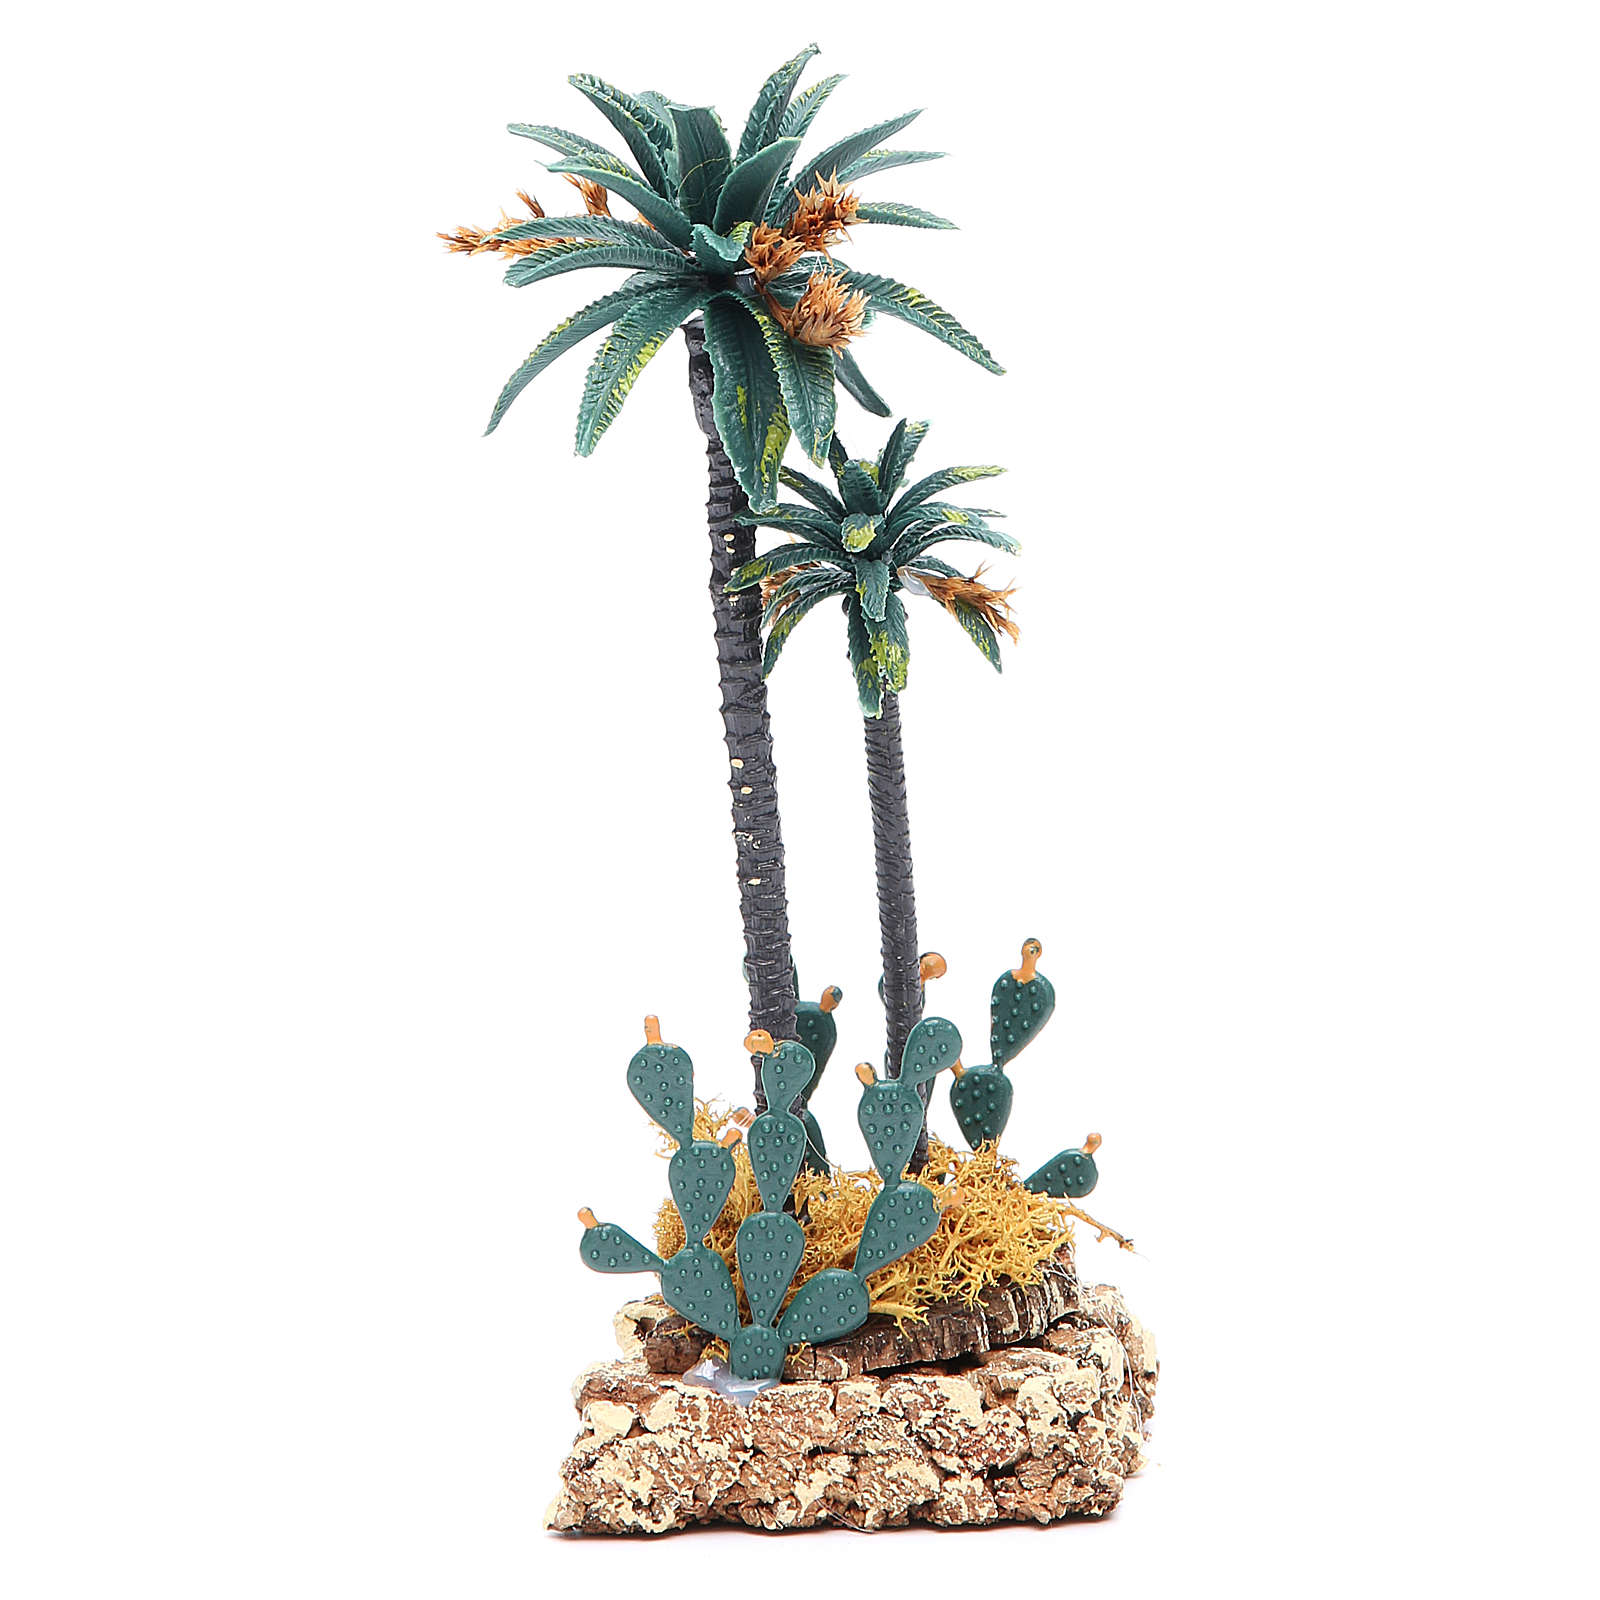 Palm tree and cactus for nativity scene in PVC, 20cm 4